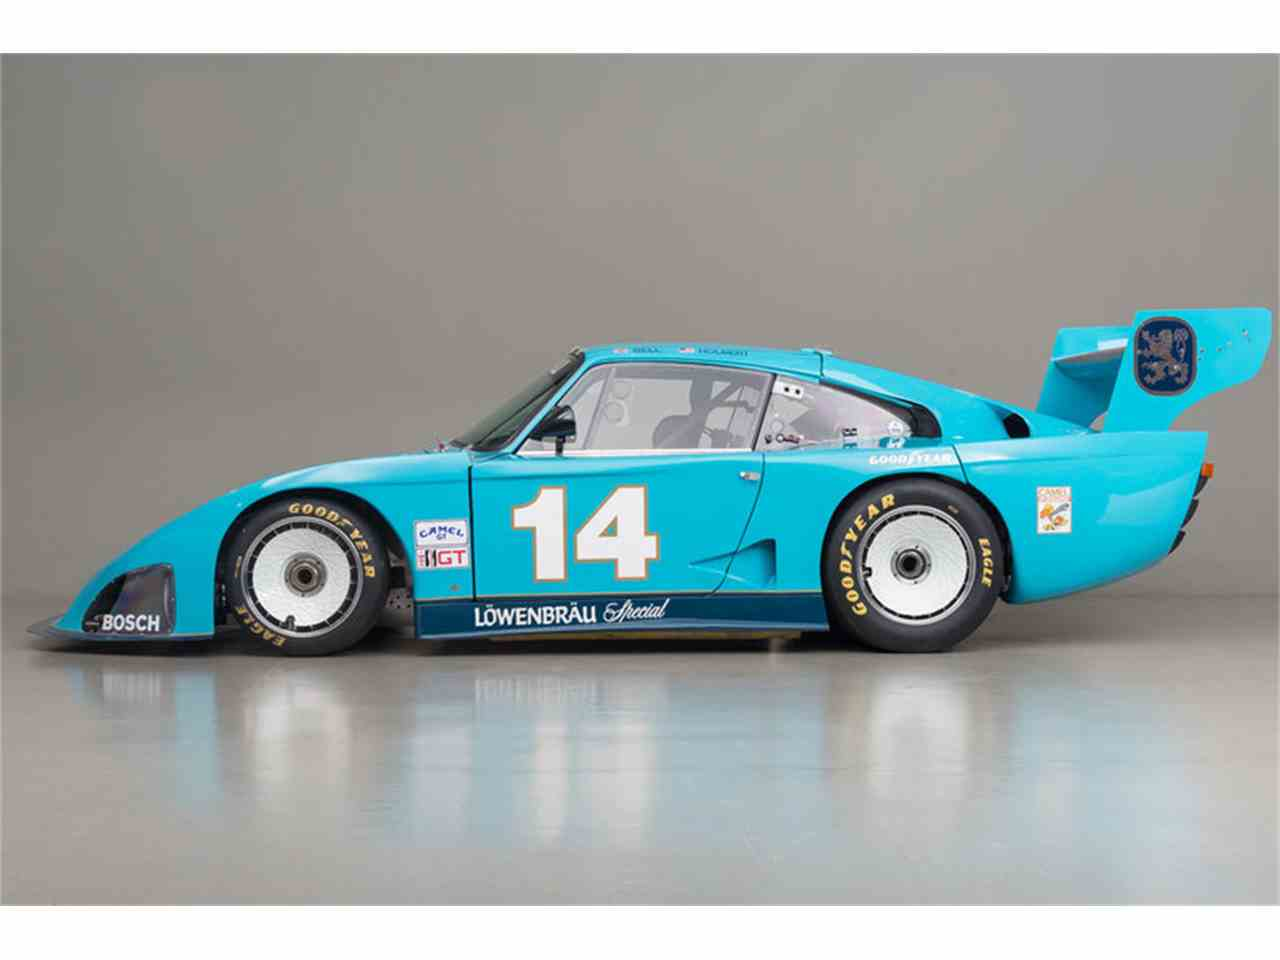 Large Picture of 1981 Porsche 935 K4 located in California Auction Vehicle Offered by Canepa - GQ9Y